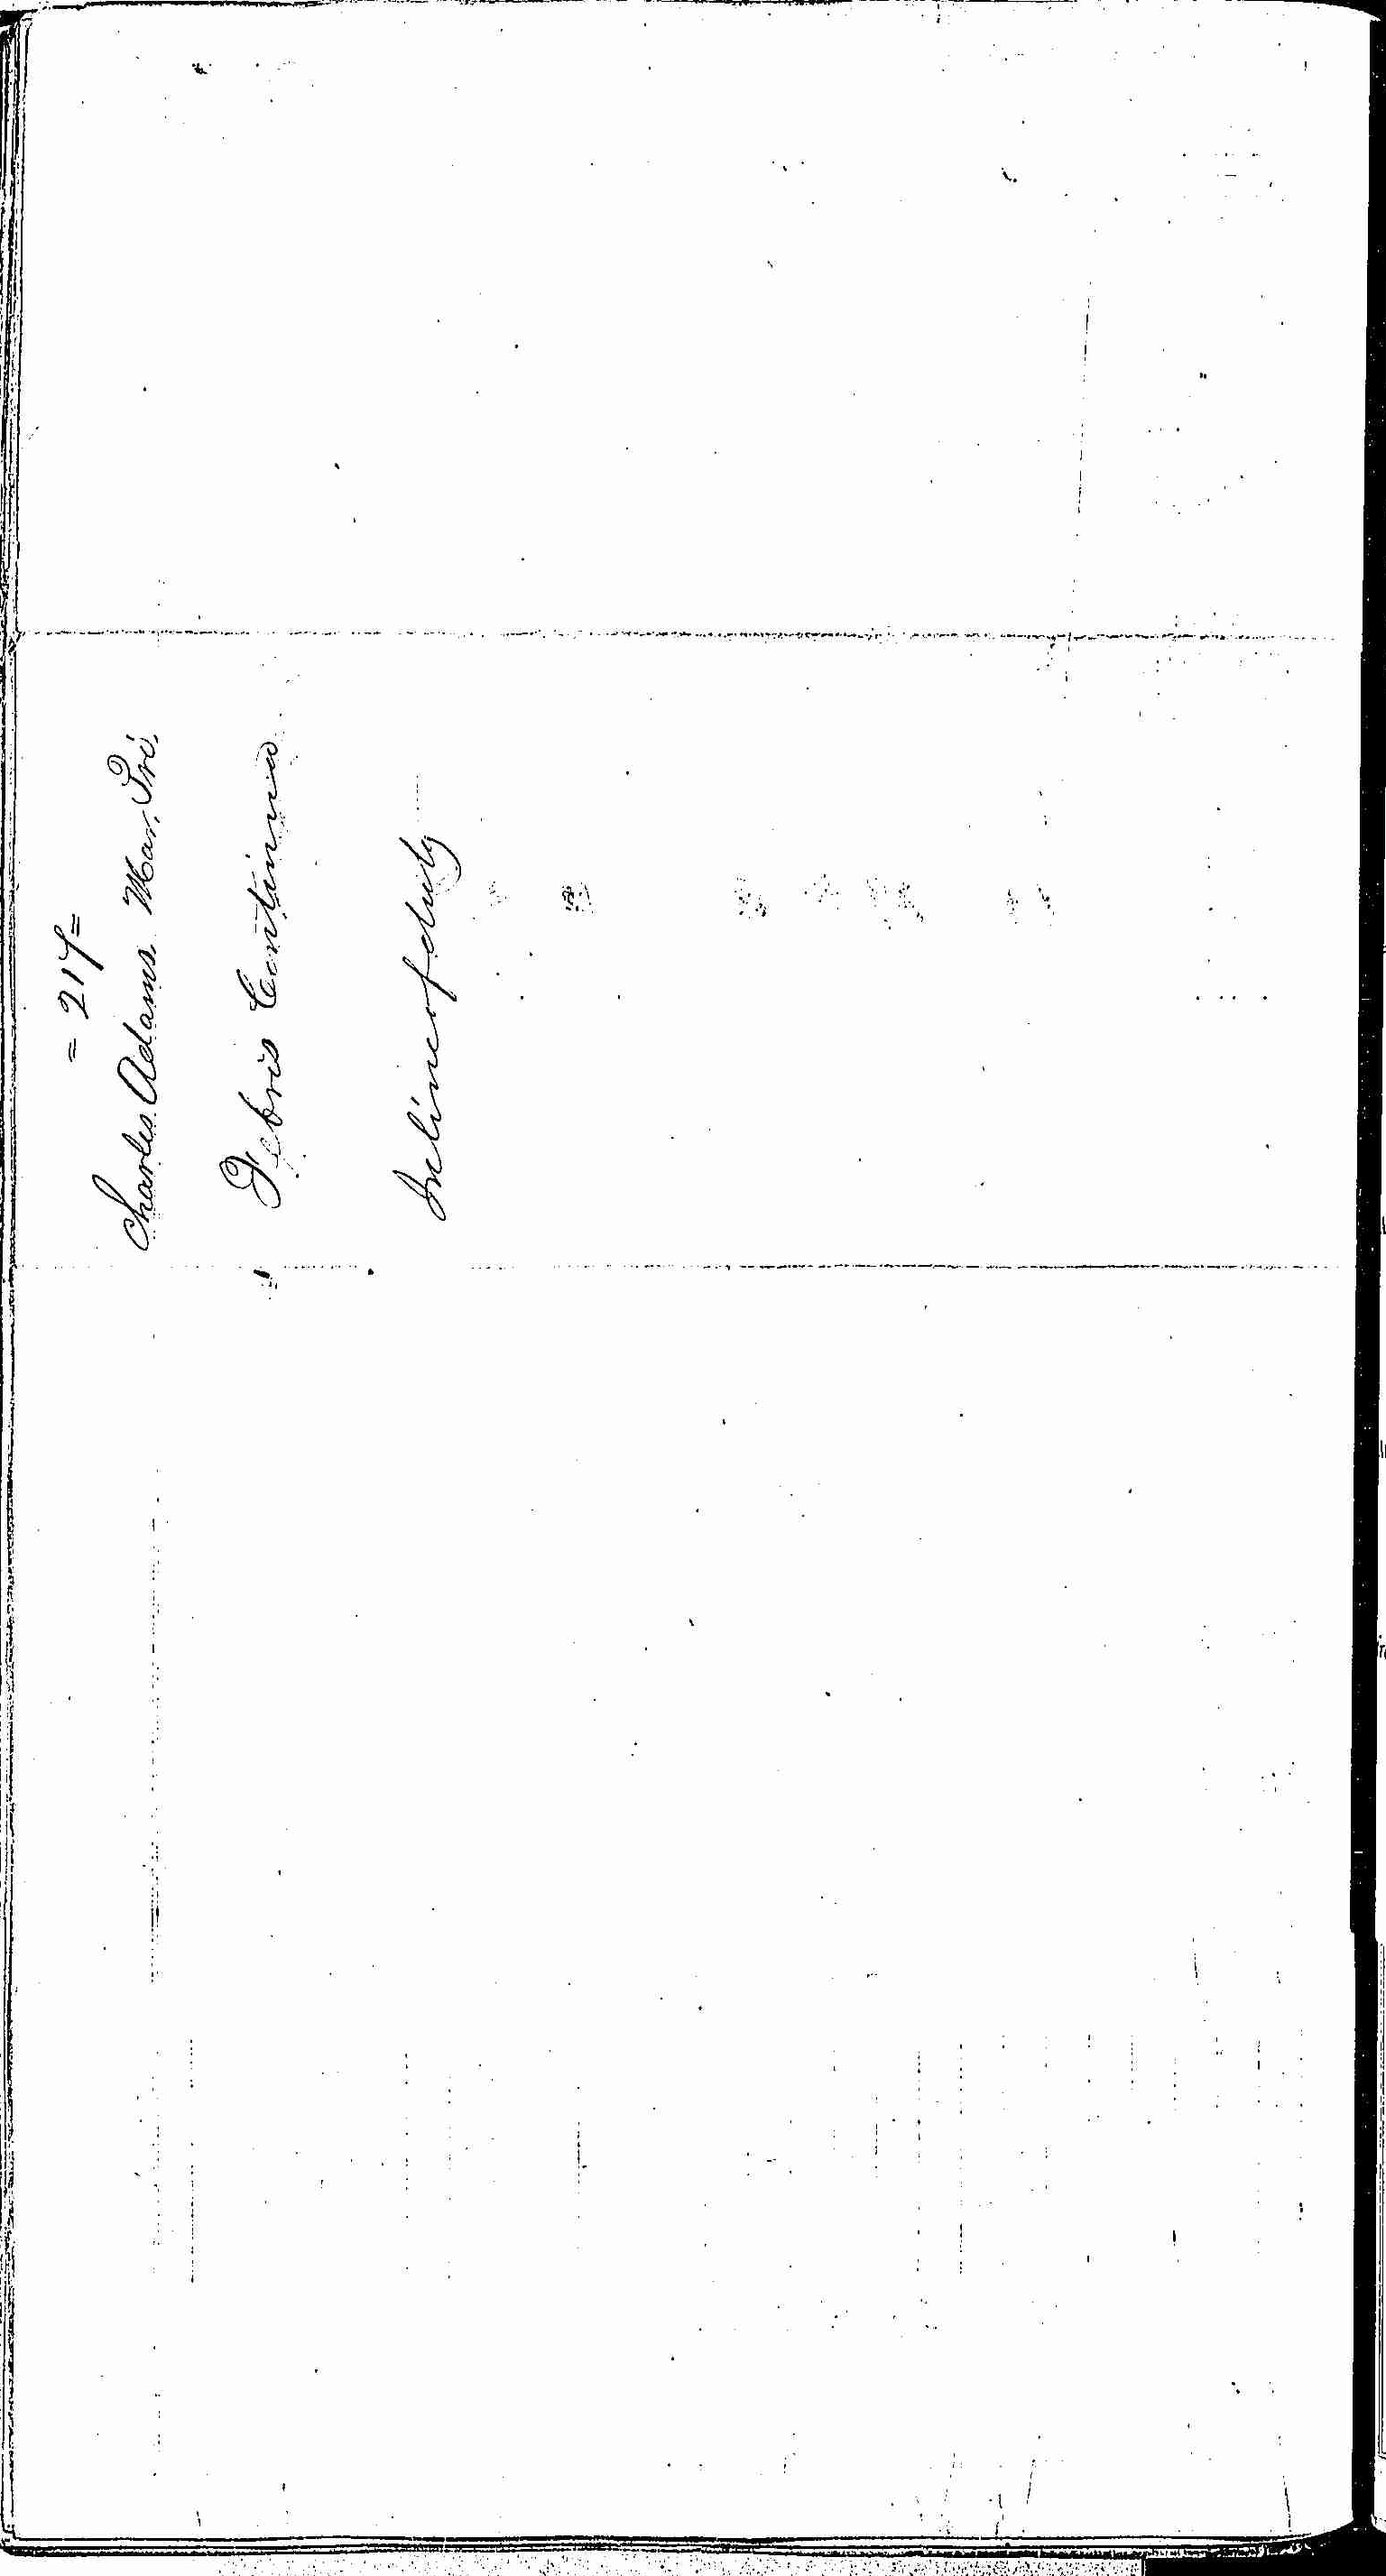 Entry for Charles Adams (page 2 of 2) in the log Hospital Tickets and Case Papers - Naval Hospital - Washington, D.C. - 1866-68